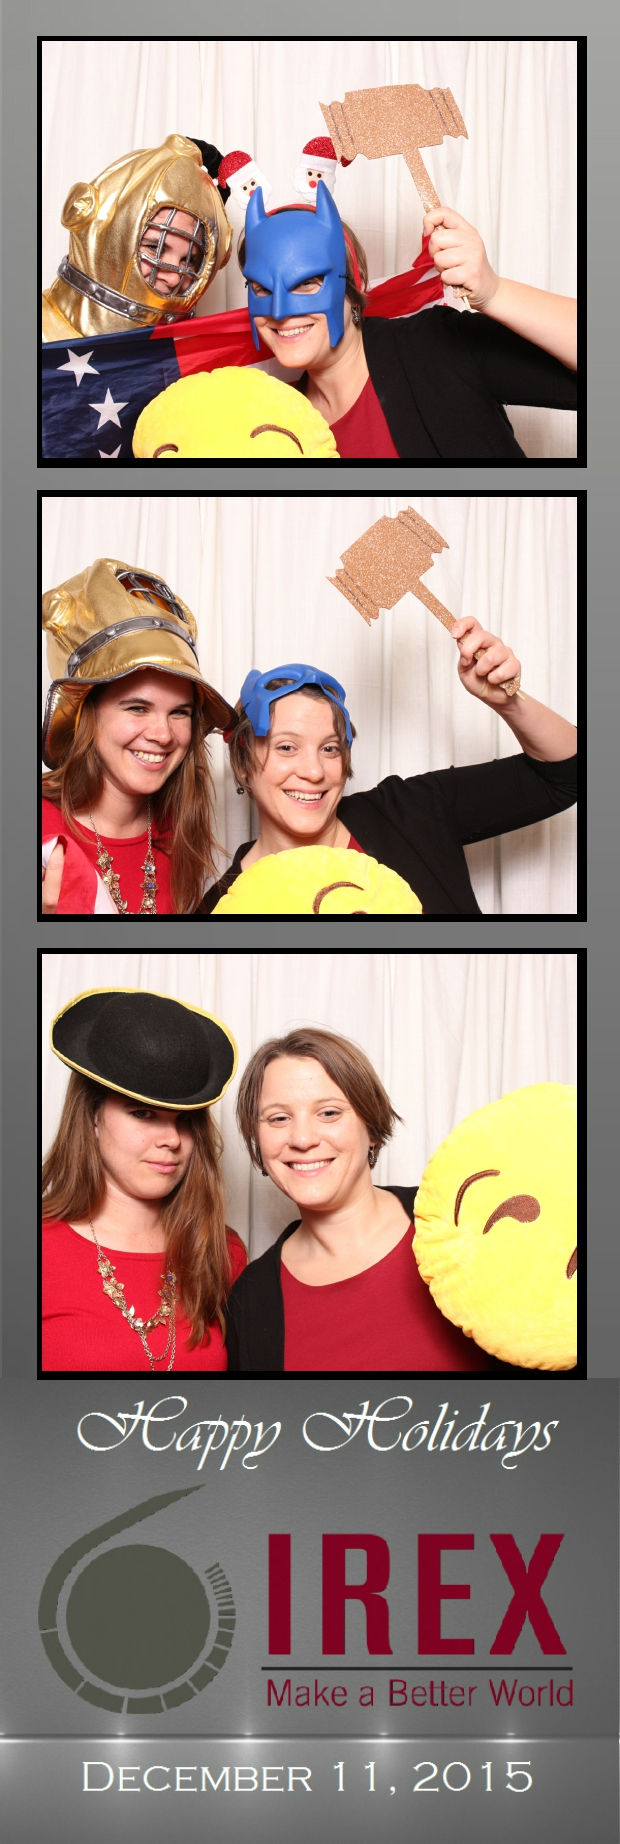 Guest House Events Photo Booth Strips IREX (53).jpg